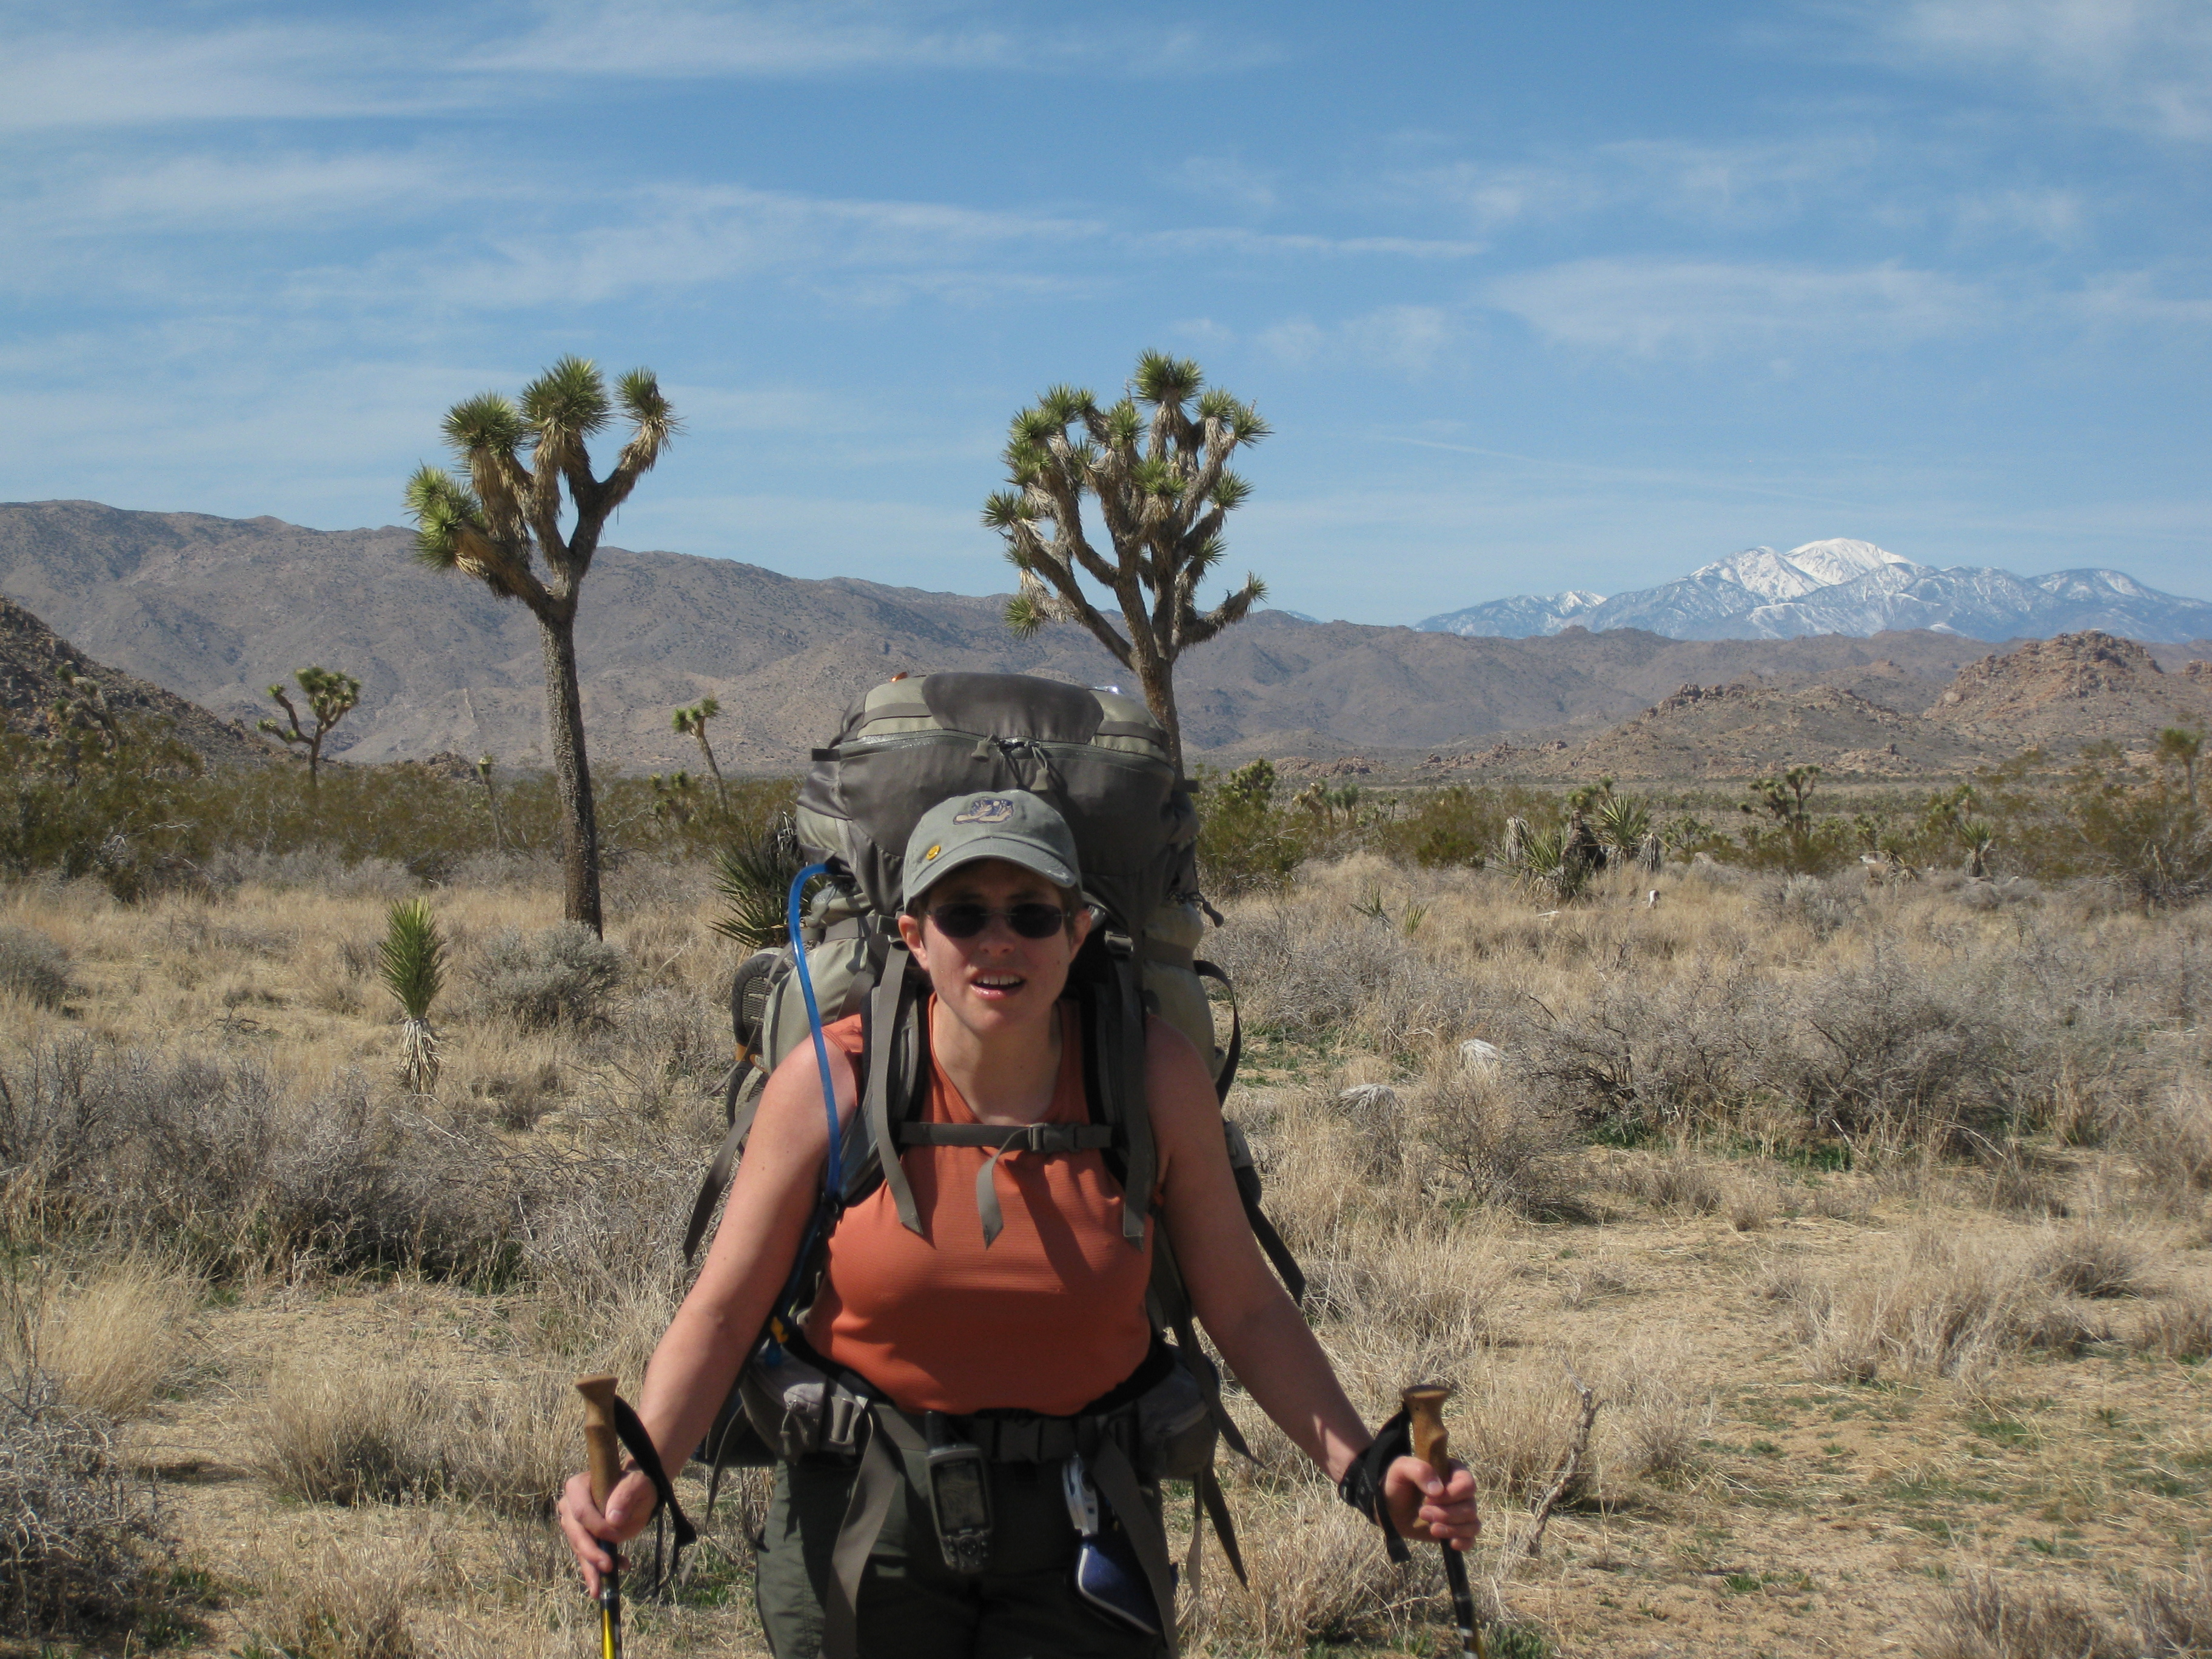 joshua tree national park bbw personals Joshua tree national park is 140 miles east of los angeles, 175 miles northeast of san diego, and 215 miles southwest of las vegas you can get there via interstate 10 and hwy 62 (twentynine palms highway) the closest airport is in palm springs there are three park entrance stations: 1) the west entrance is located five miles south of.